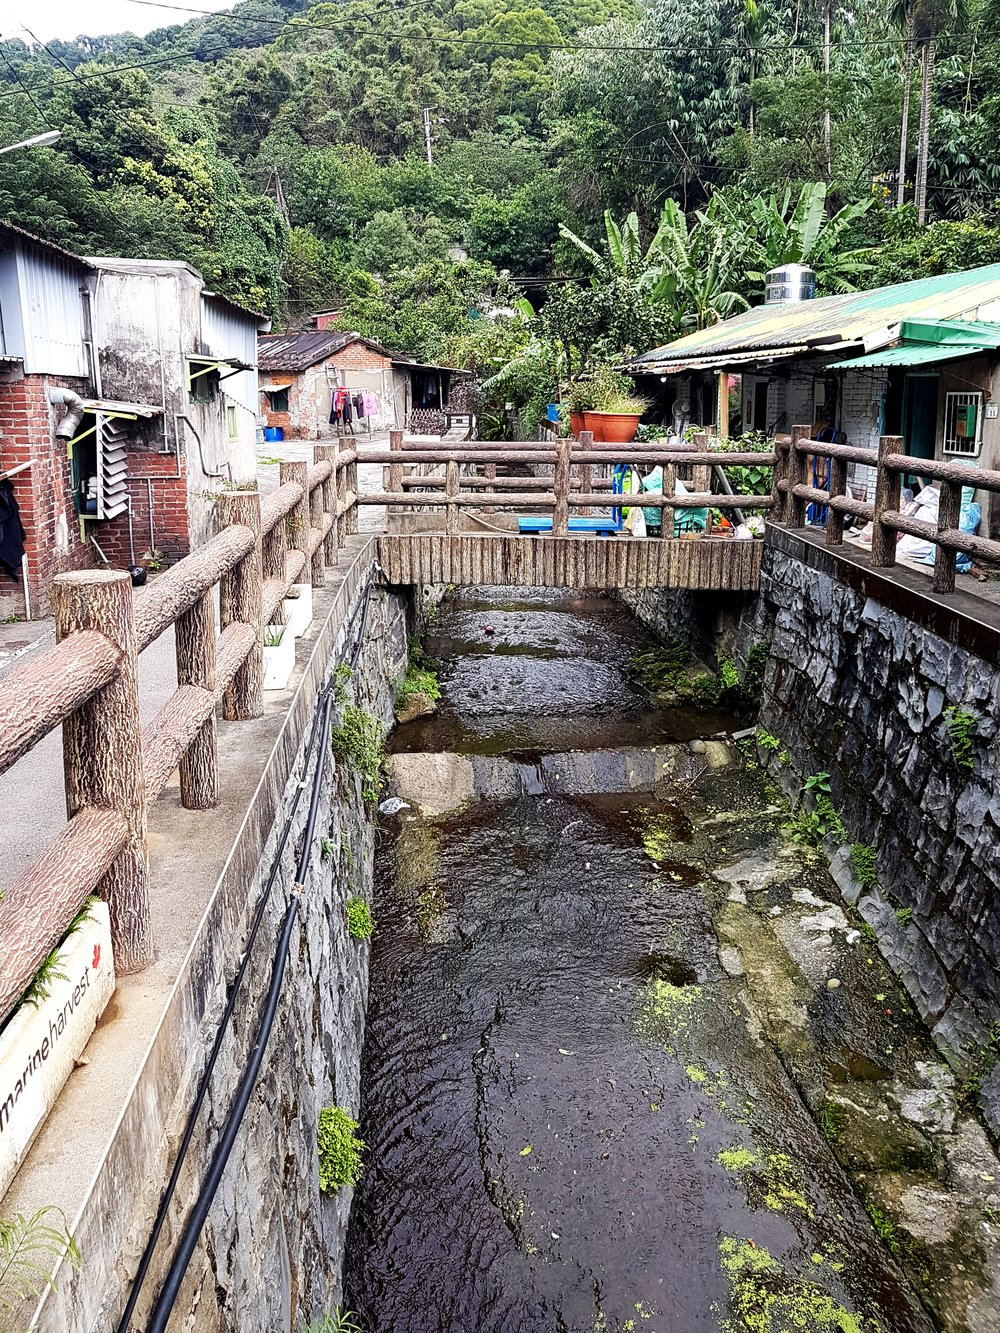 The main stream running through Shanjia on each visit.